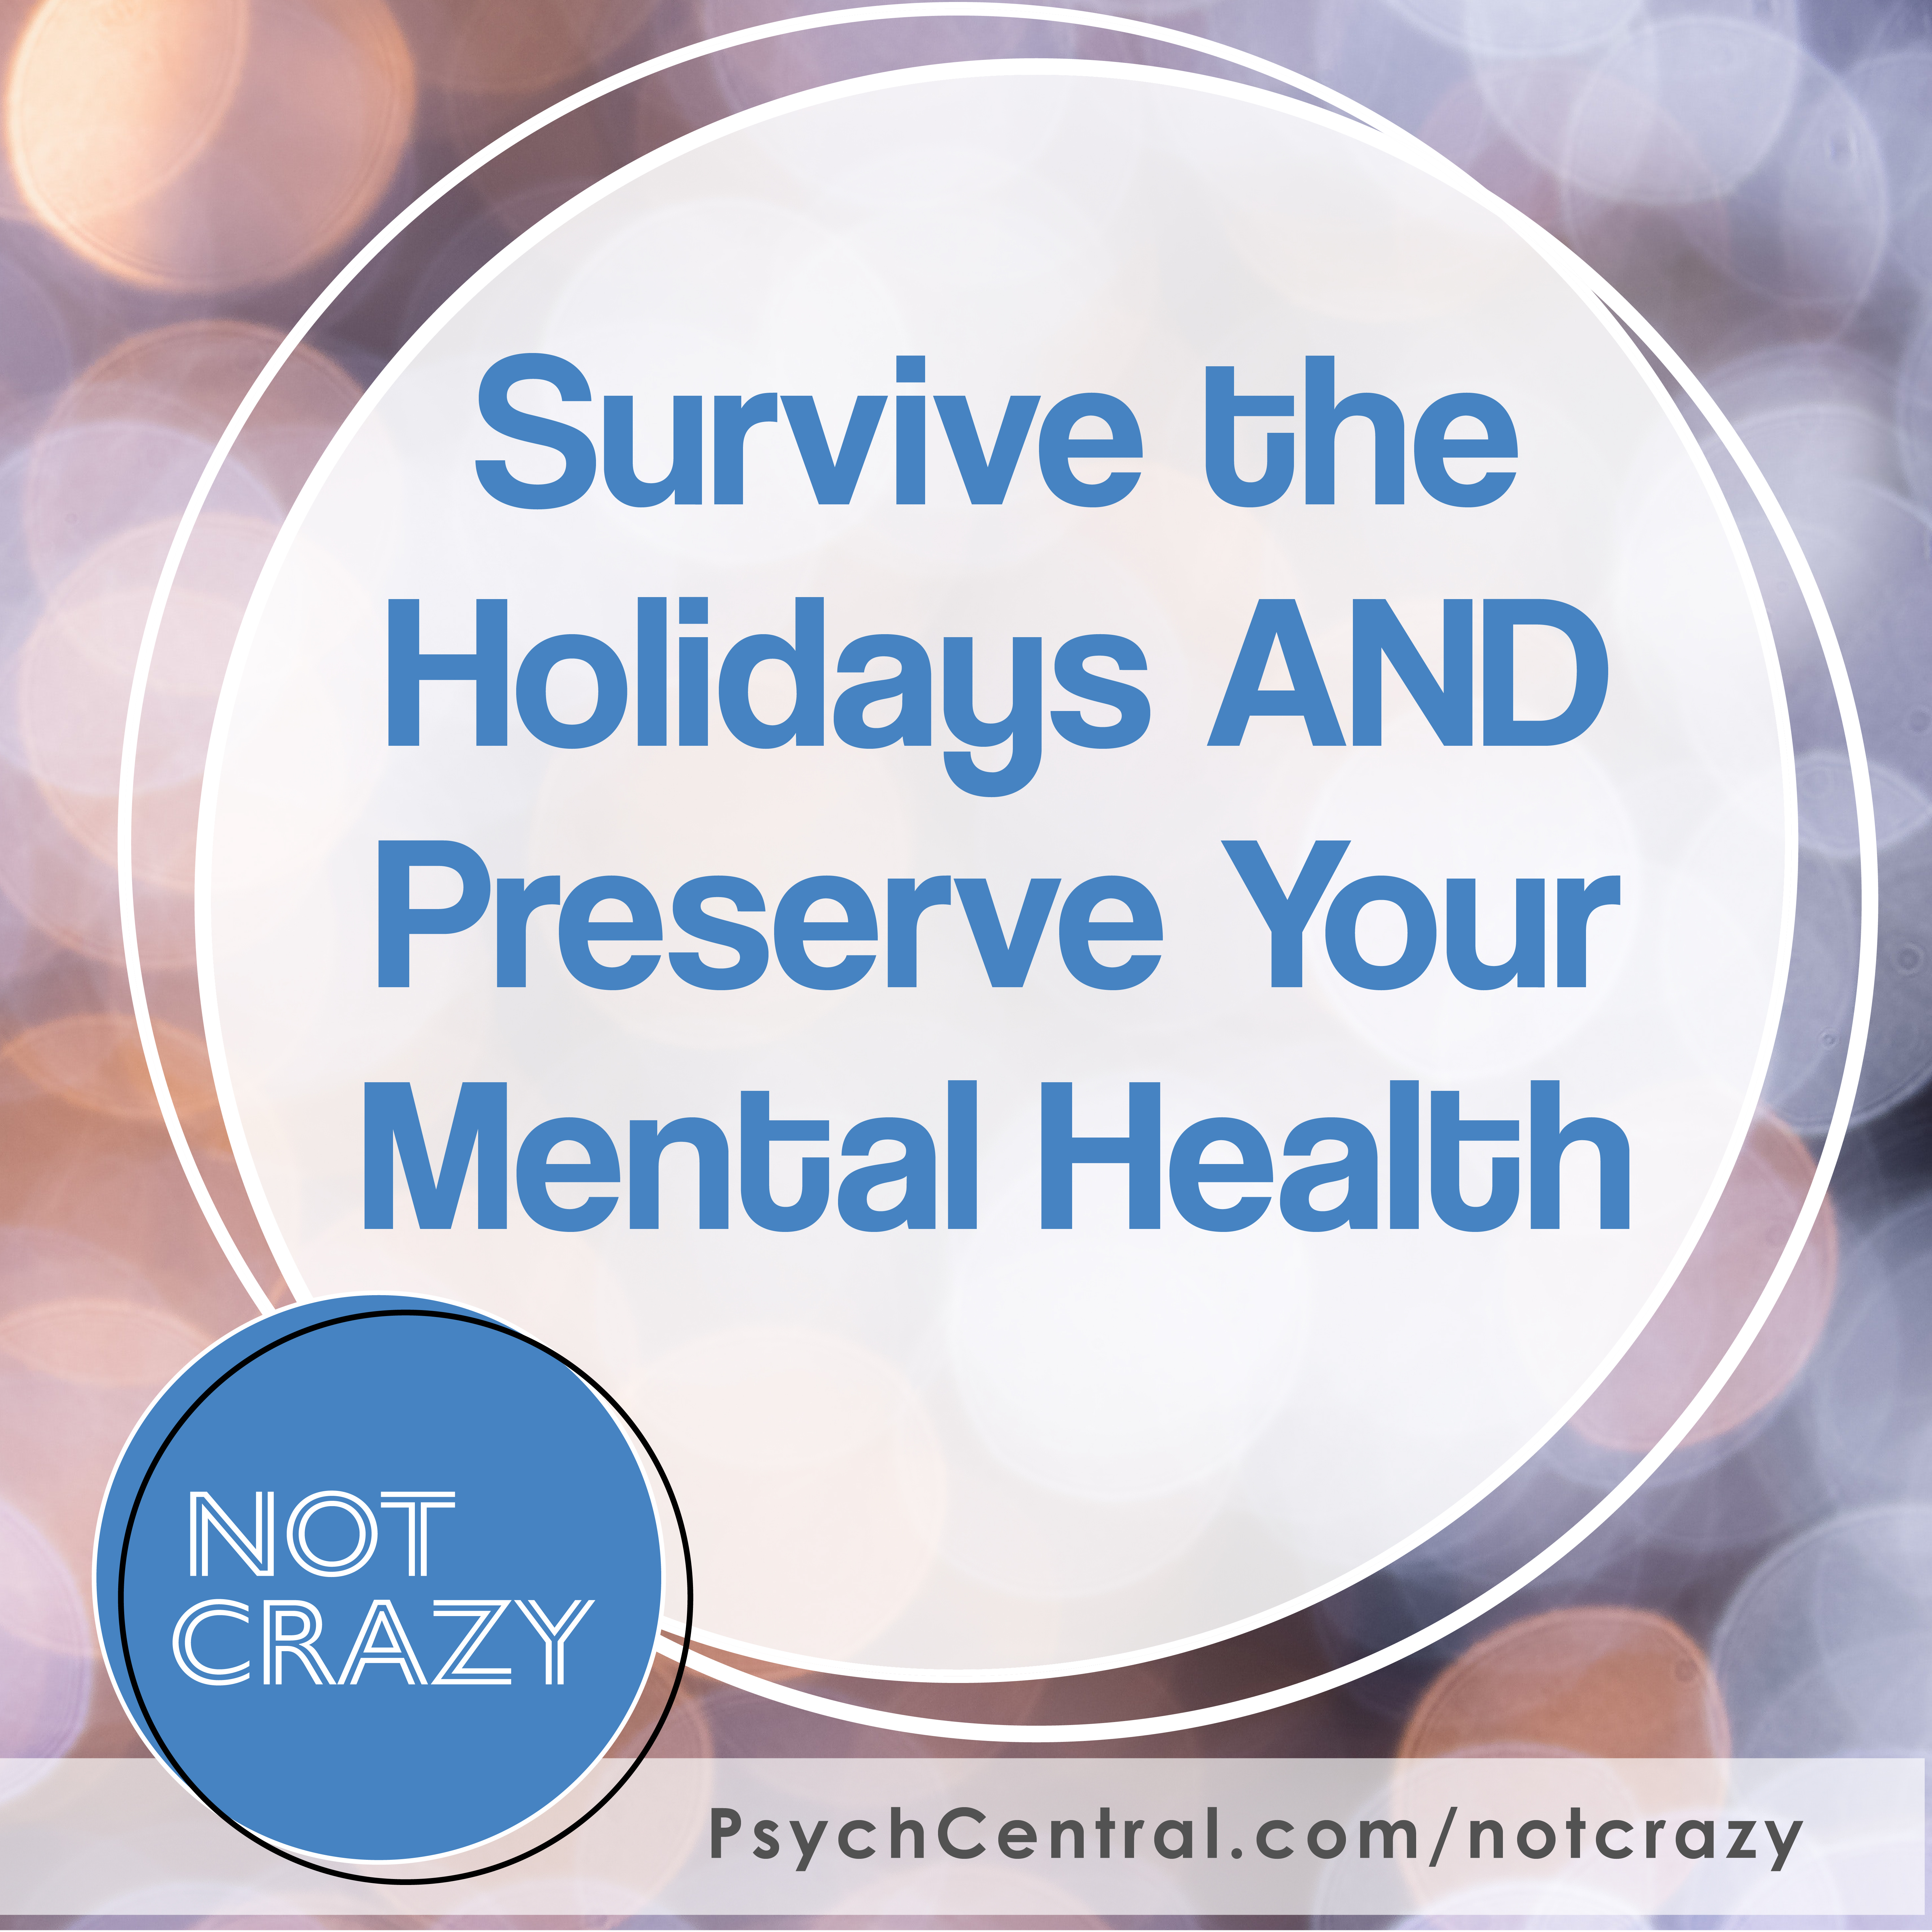 Artwork for Survive the Holidays AND preserve your Mental Health